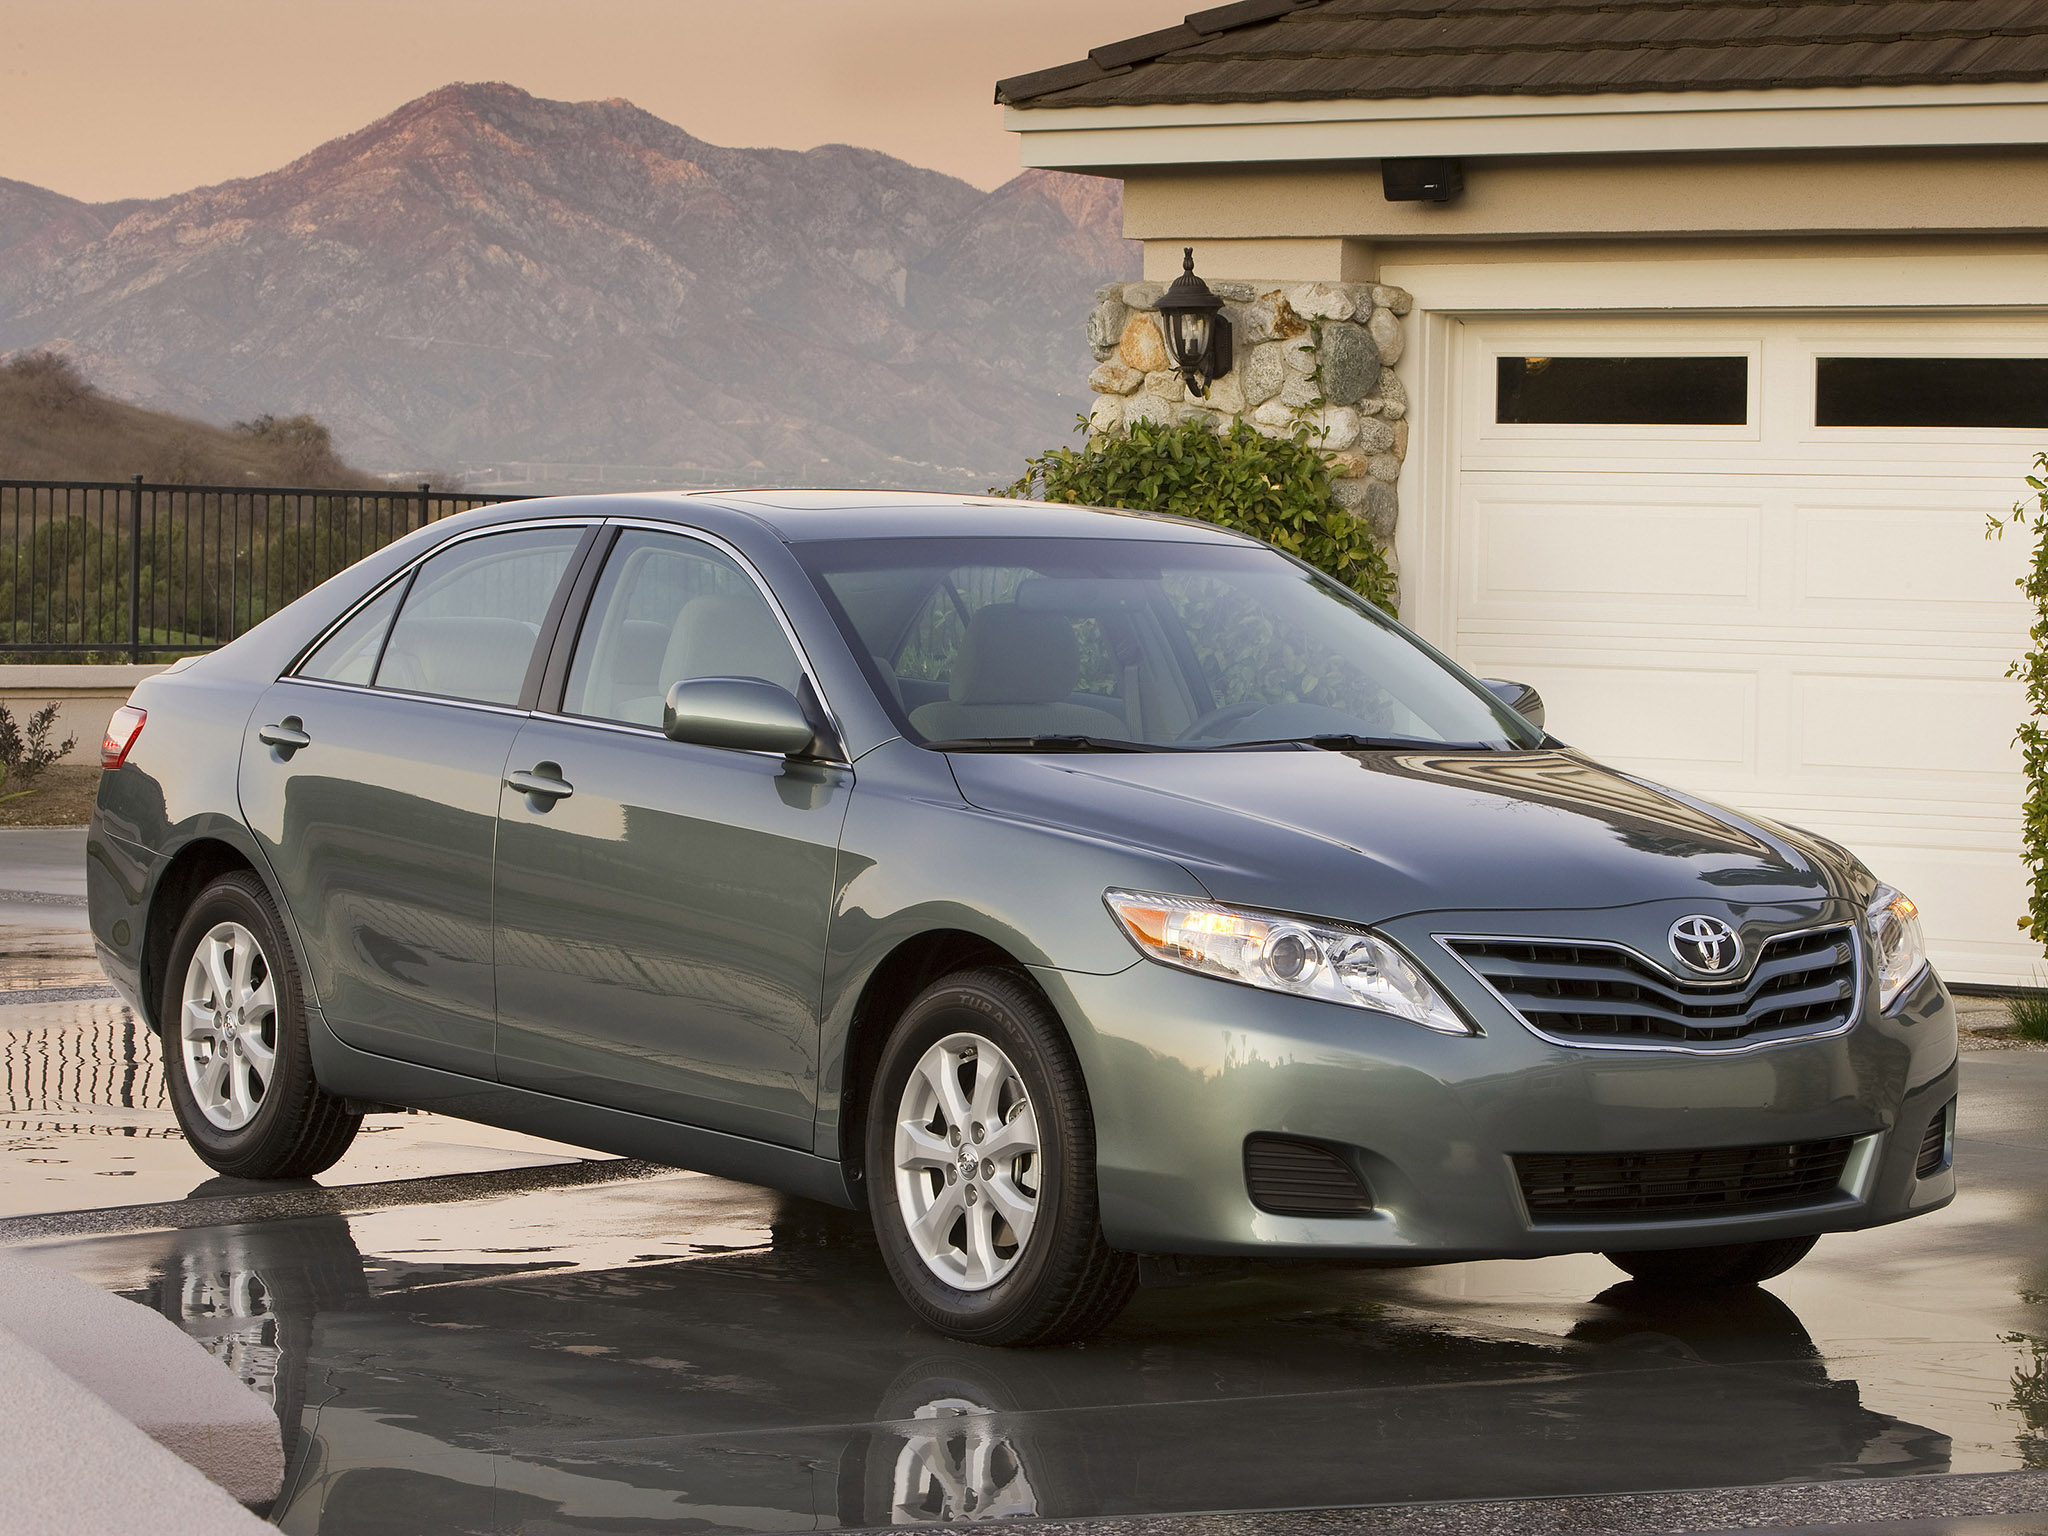 toyota camry le 2009 toyota camry le 2009 photo 13 car in pictures car ph. Black Bedroom Furniture Sets. Home Design Ideas